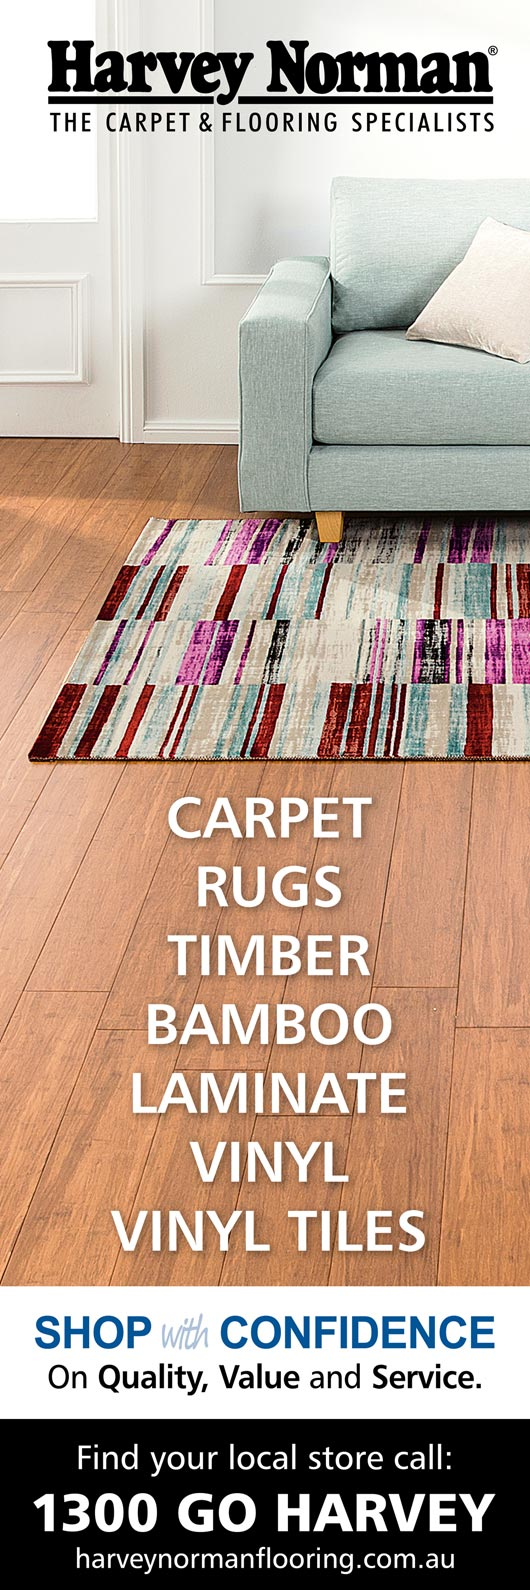 Harvey Norman Carpet and Flooring - Promotion